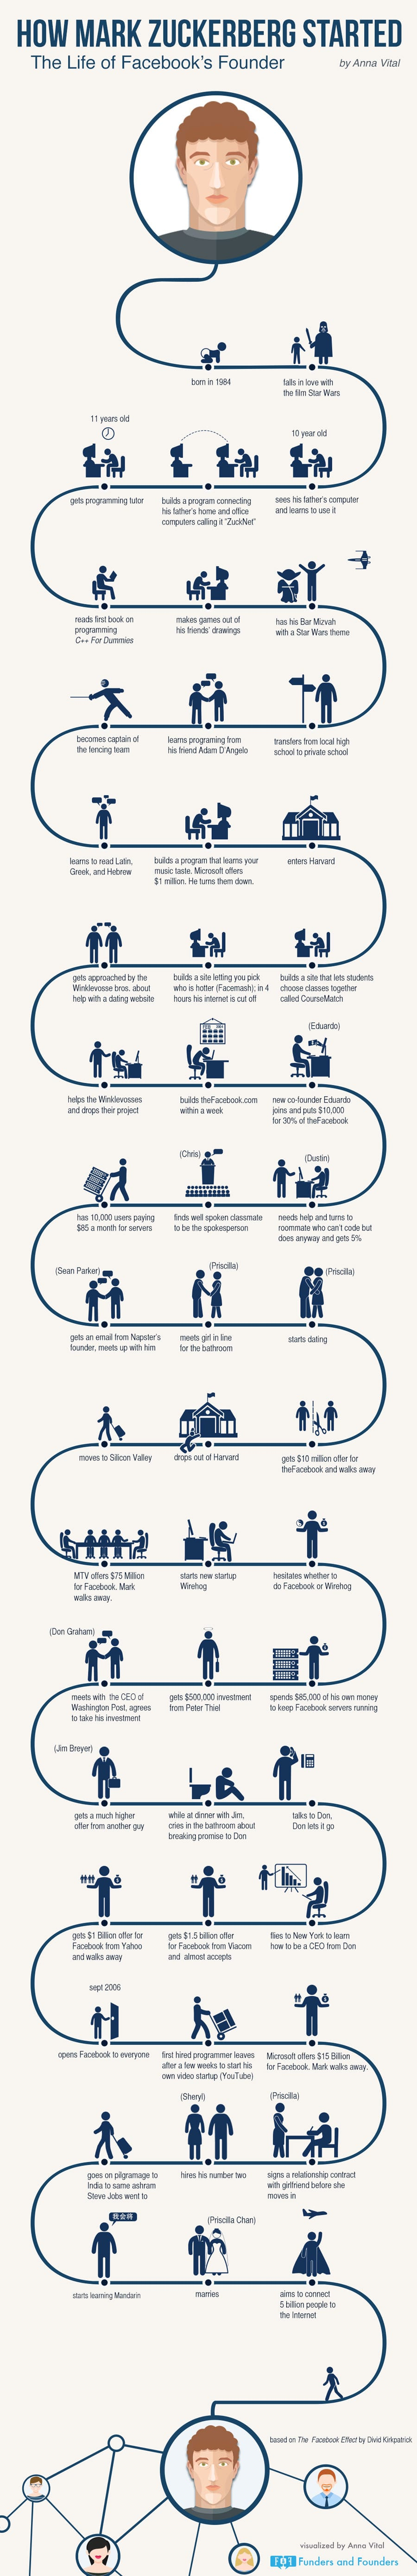 ONE TIME USE Handout: Zuckerberg Infographic